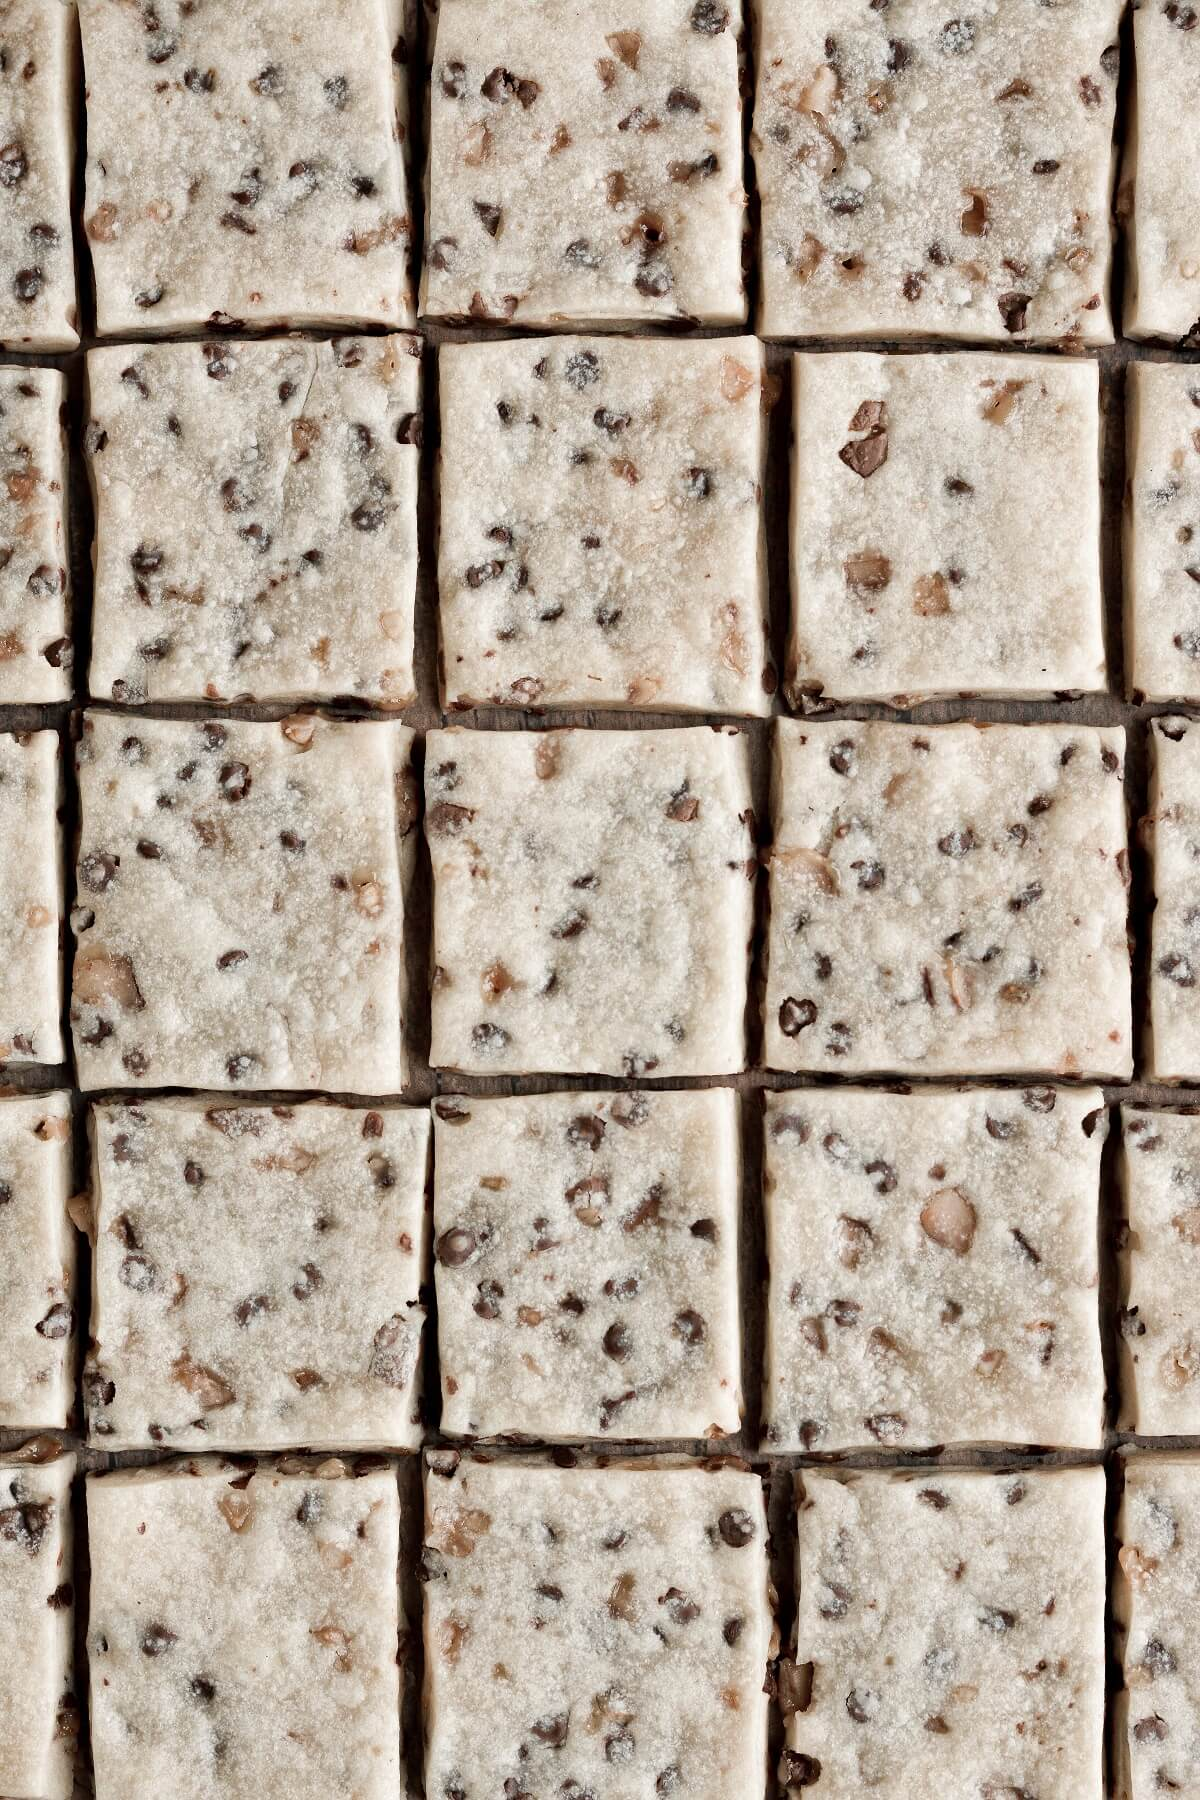 Chocolate chip toffee shortbread, cut into squares and arranged in a grid pattern.